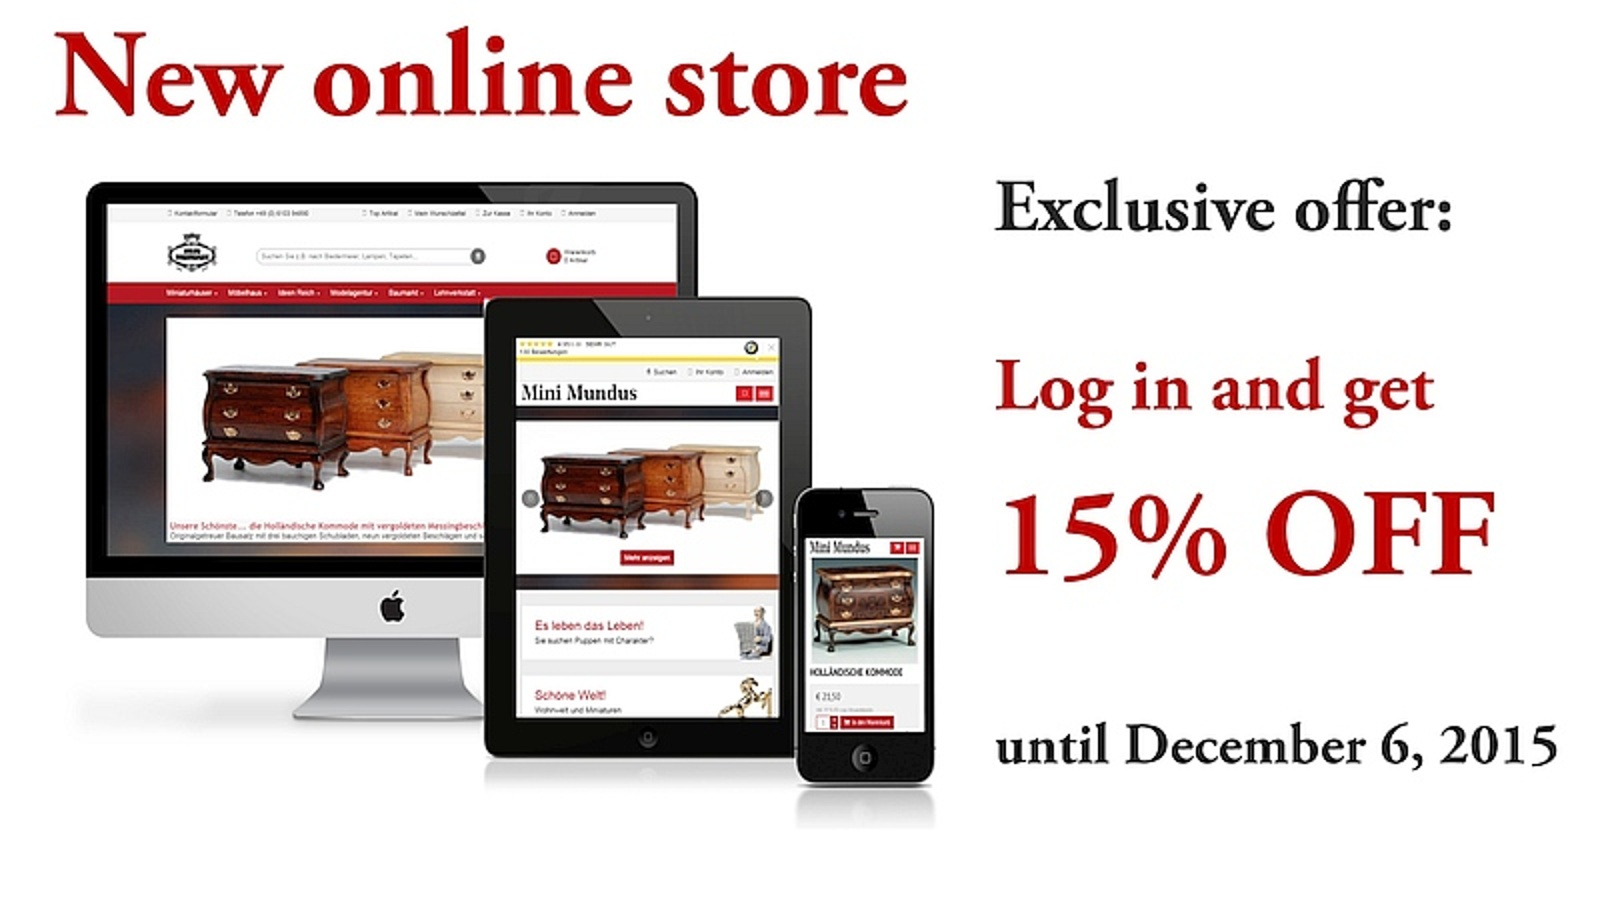 Our new online store is as mobile as you!